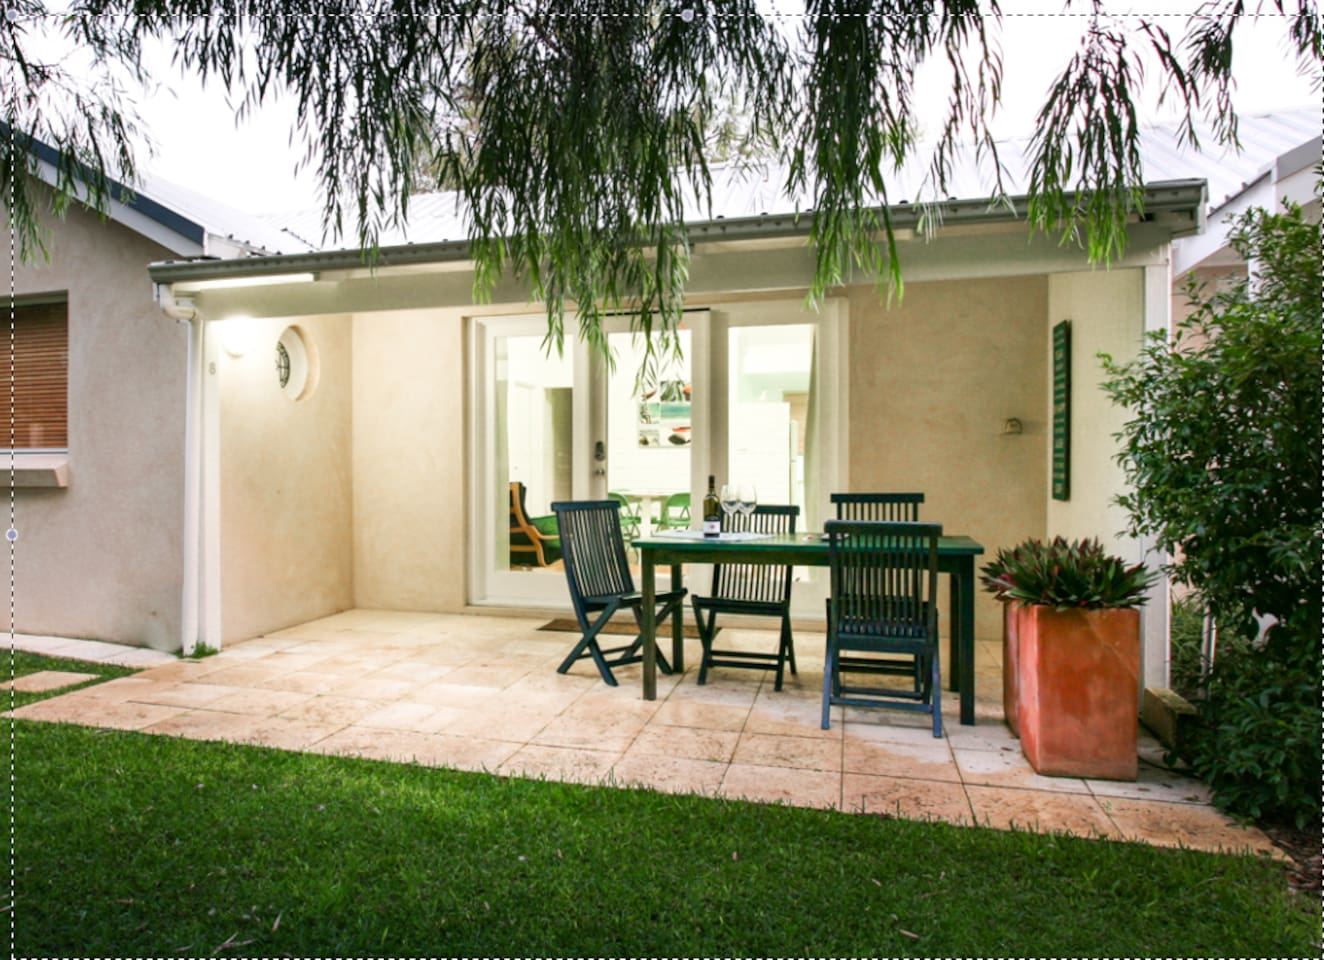 Outdoor setting of the villa, with large lawned area & parking bay